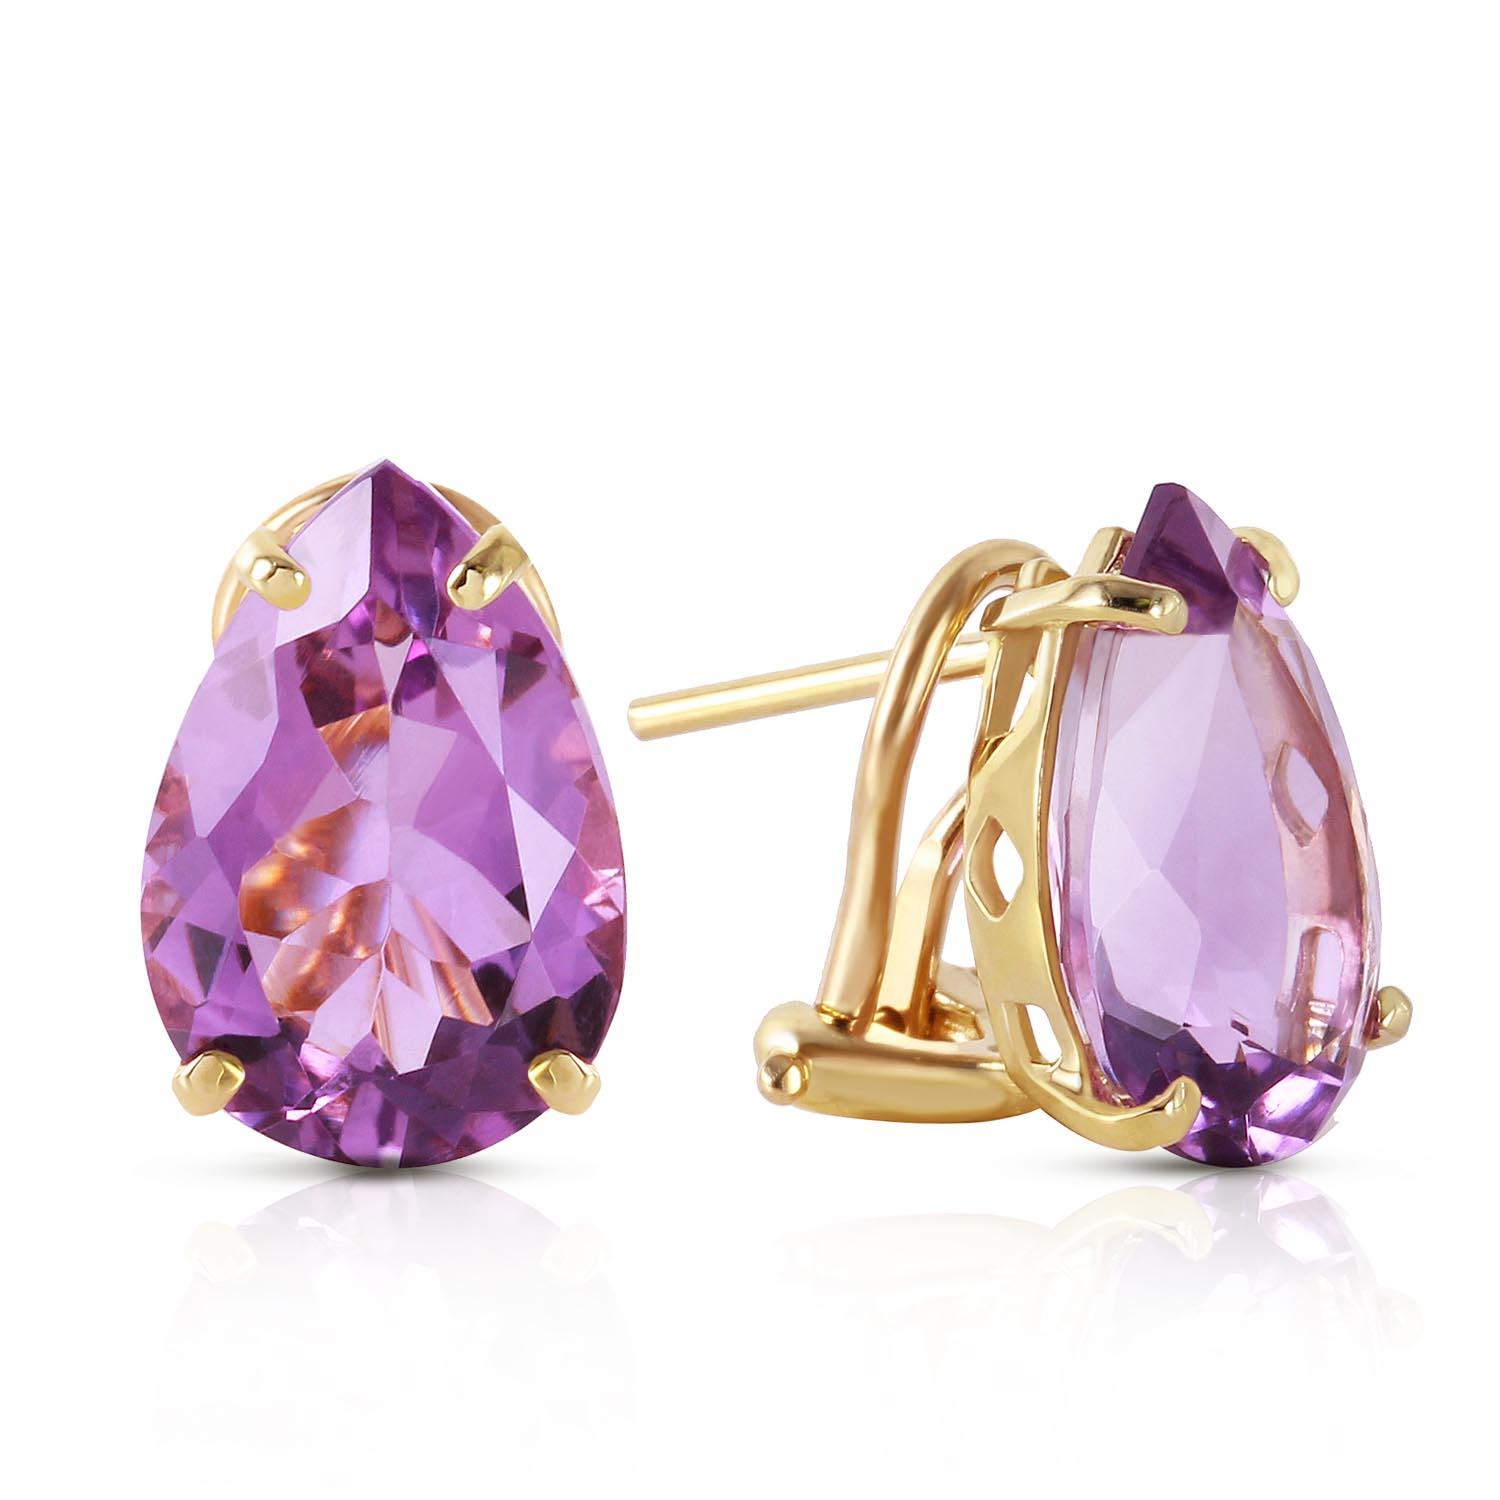 Amethyst Droplet Stud Earrings 10.0ctw in 9ct Gold